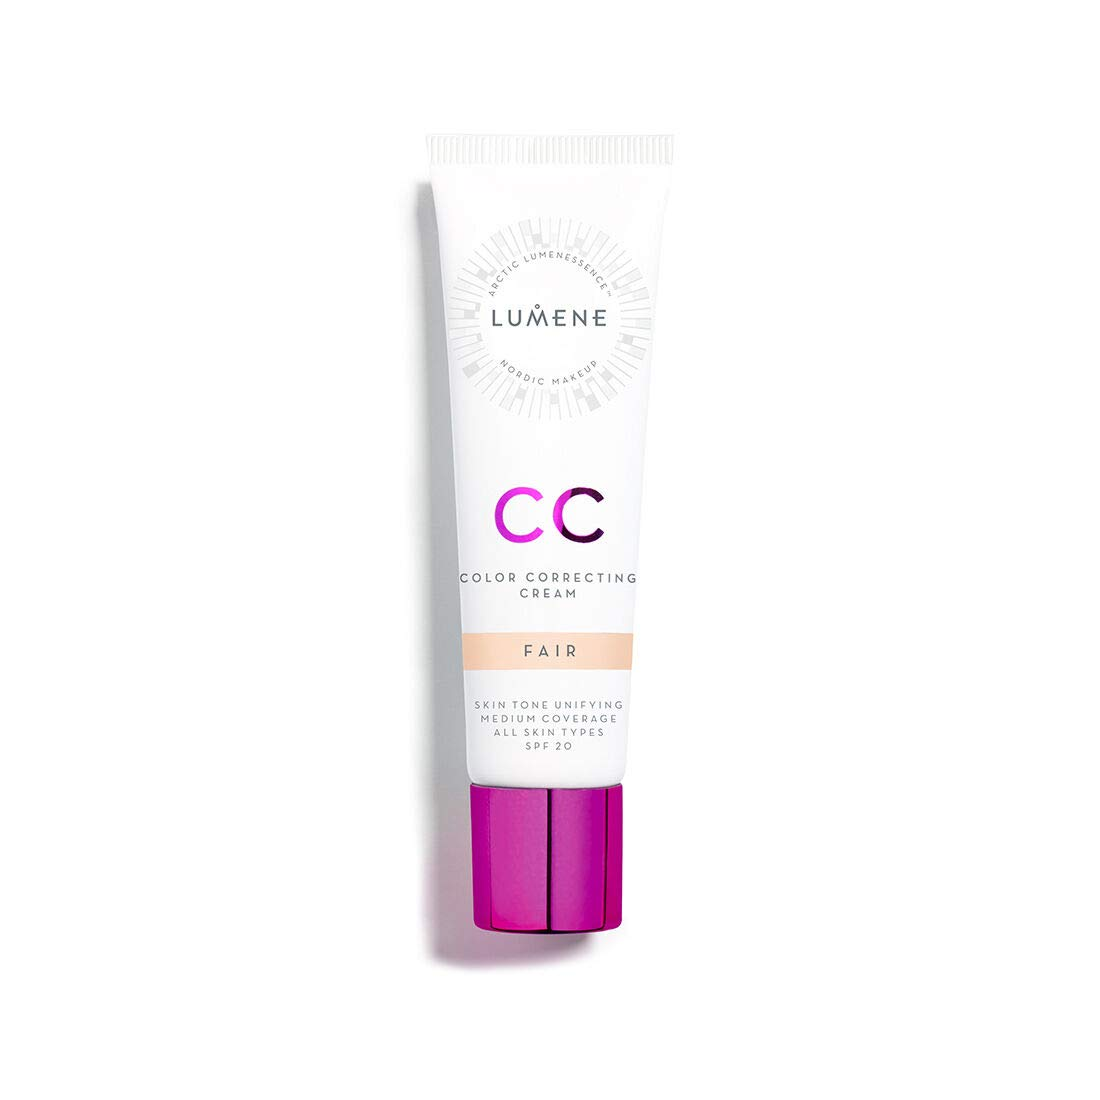 Lumene CC Color Correcting Cream infused with Pure Arctic Spring Water - 6 in 1 Medium Coverage for all Skin Types SPF 20-30 ml / 1.0 Fl.Oz. (Fair)